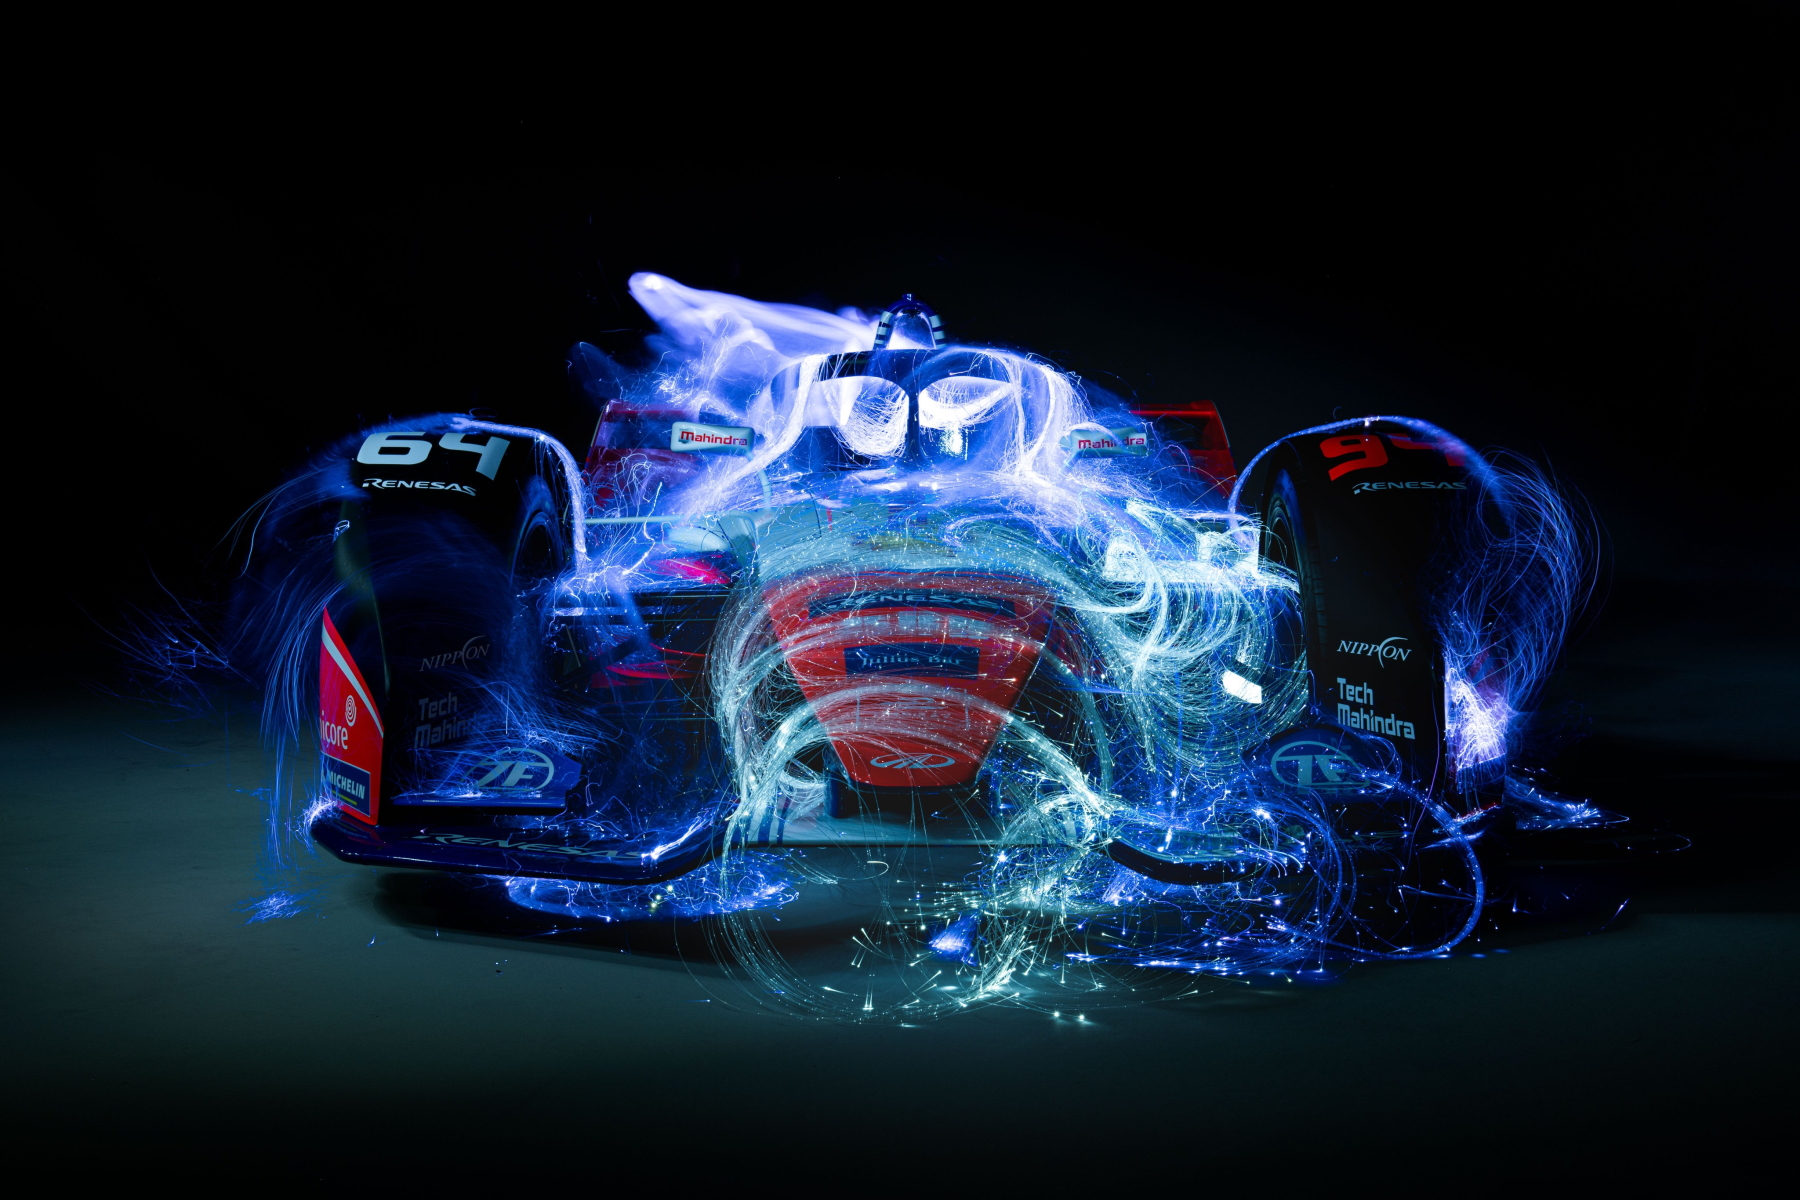 Mahindra Season 6 car photo art front view 2 1800px.jpg